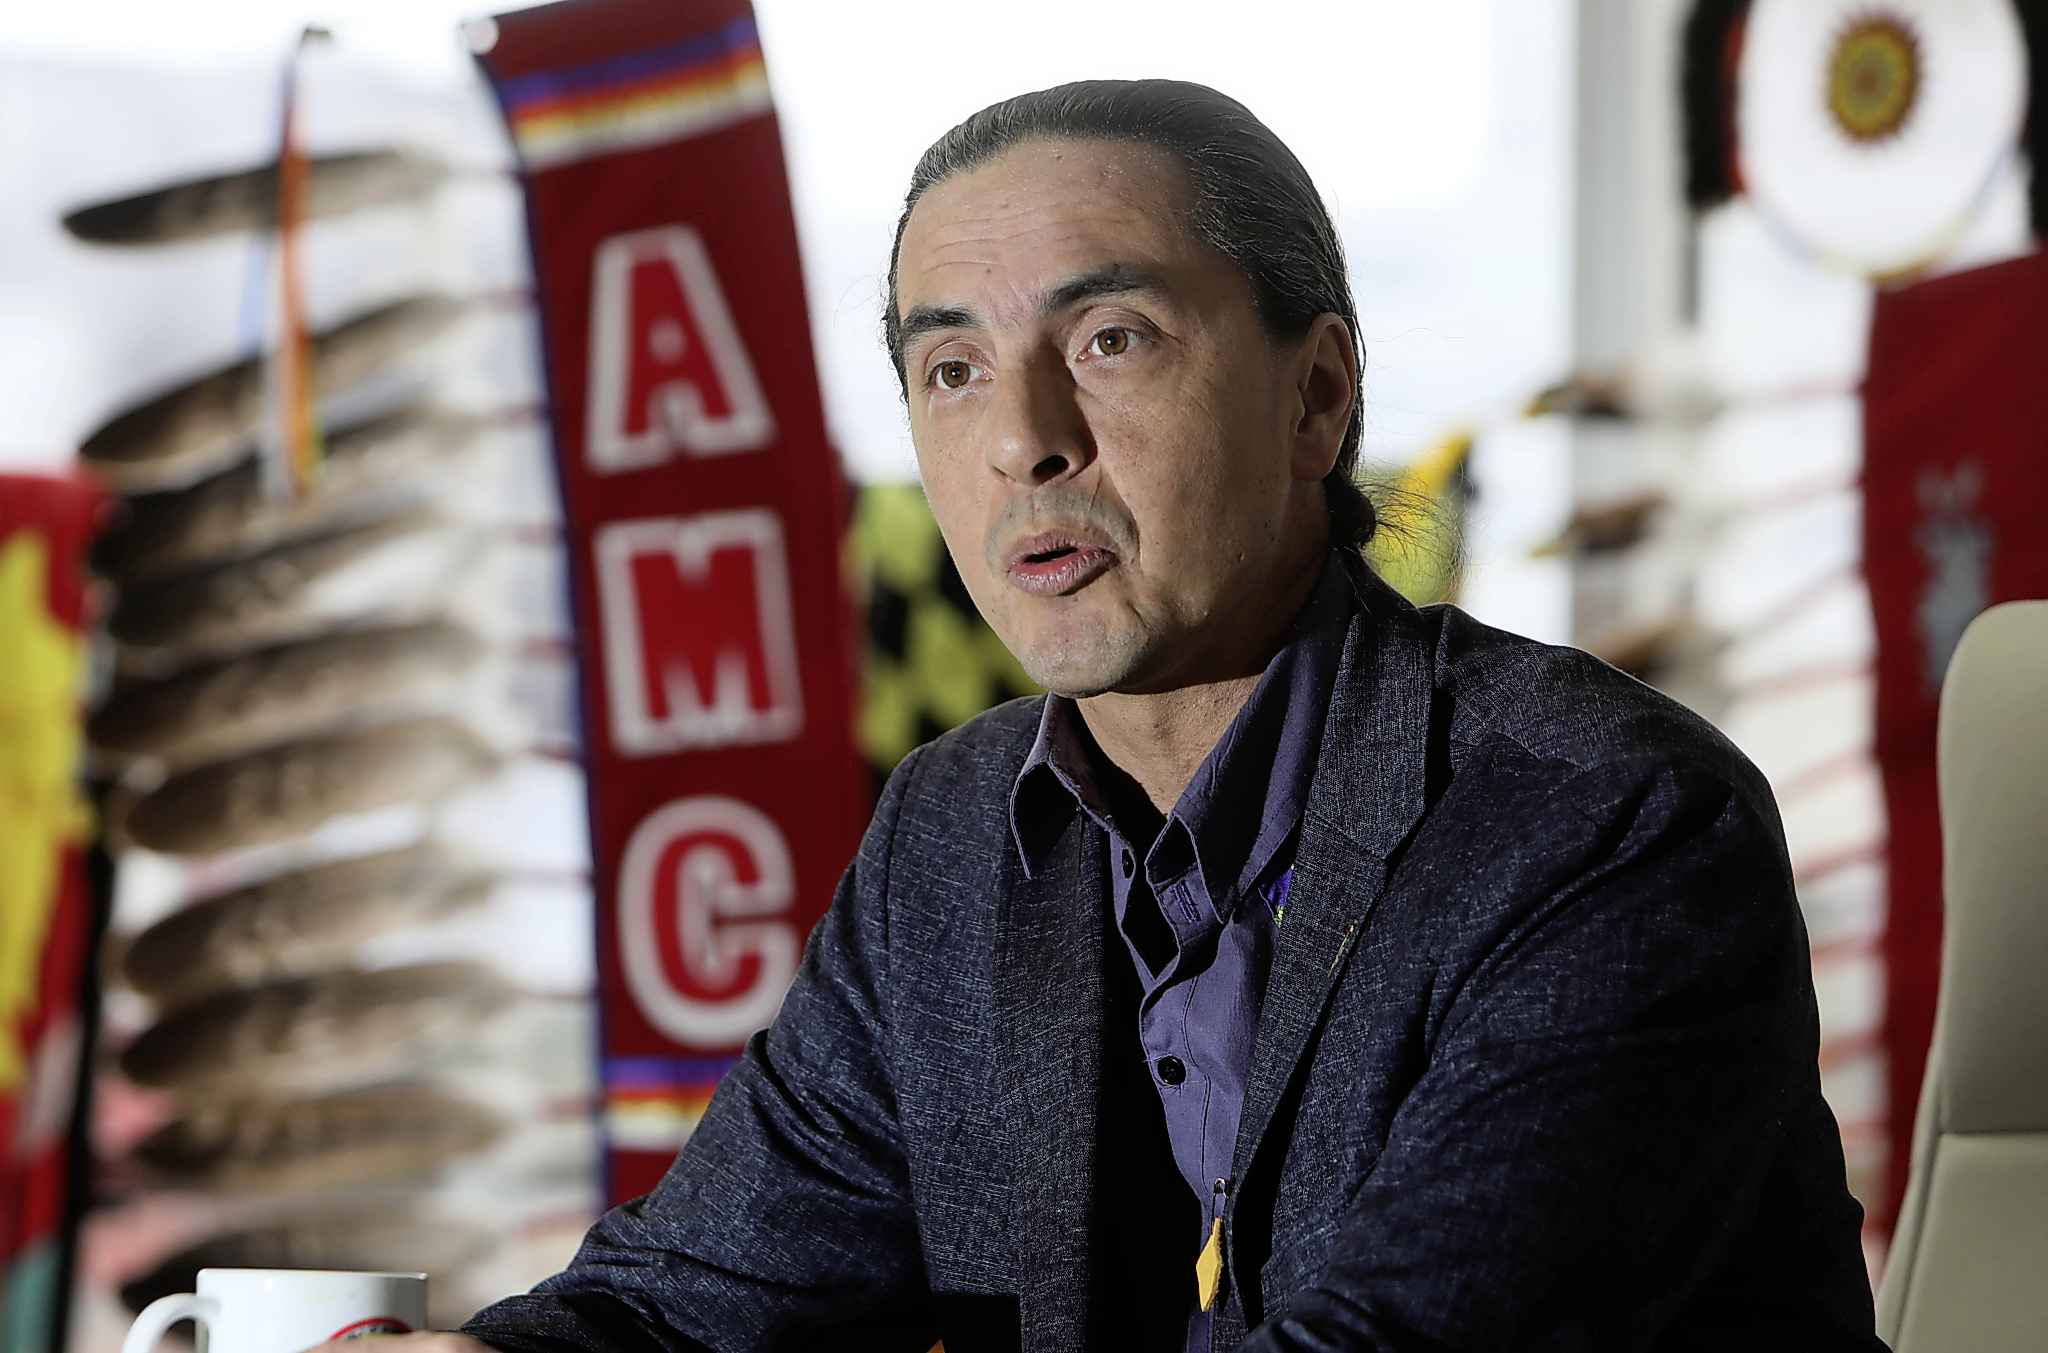 AMC Grand Chief Arlen Dumas: 'Societies are judged by how the less fortunate are treated.'